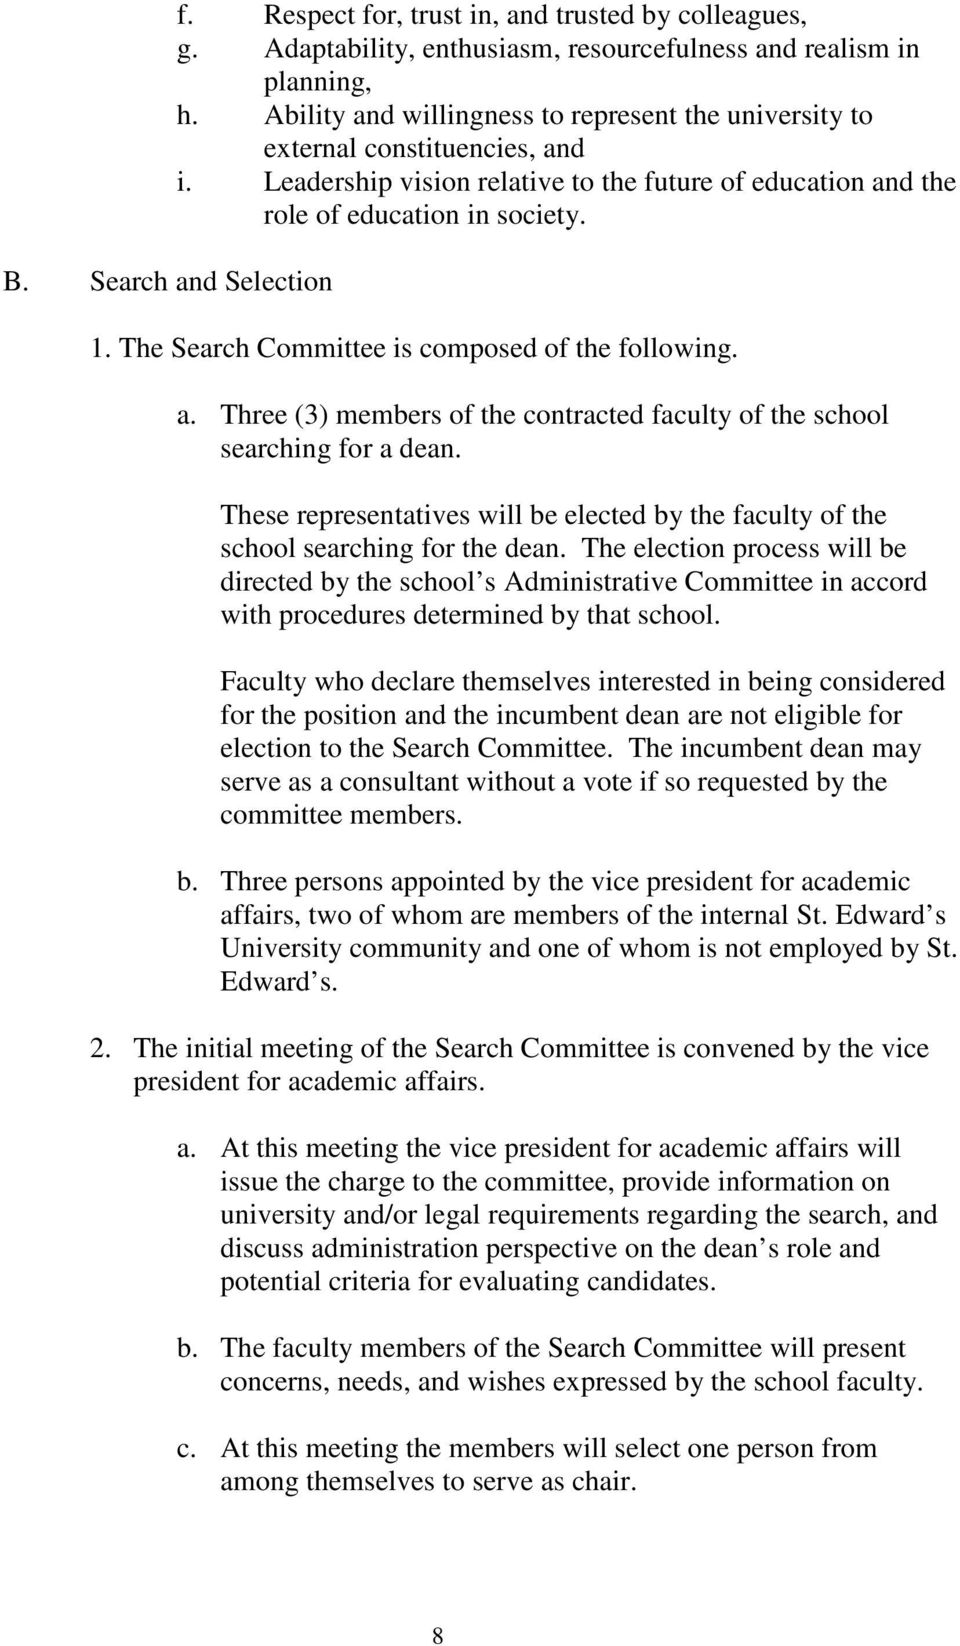 The Search Committee is composed of the following. a. Three (3) members of the contracted faculty of the school searching for a dean.